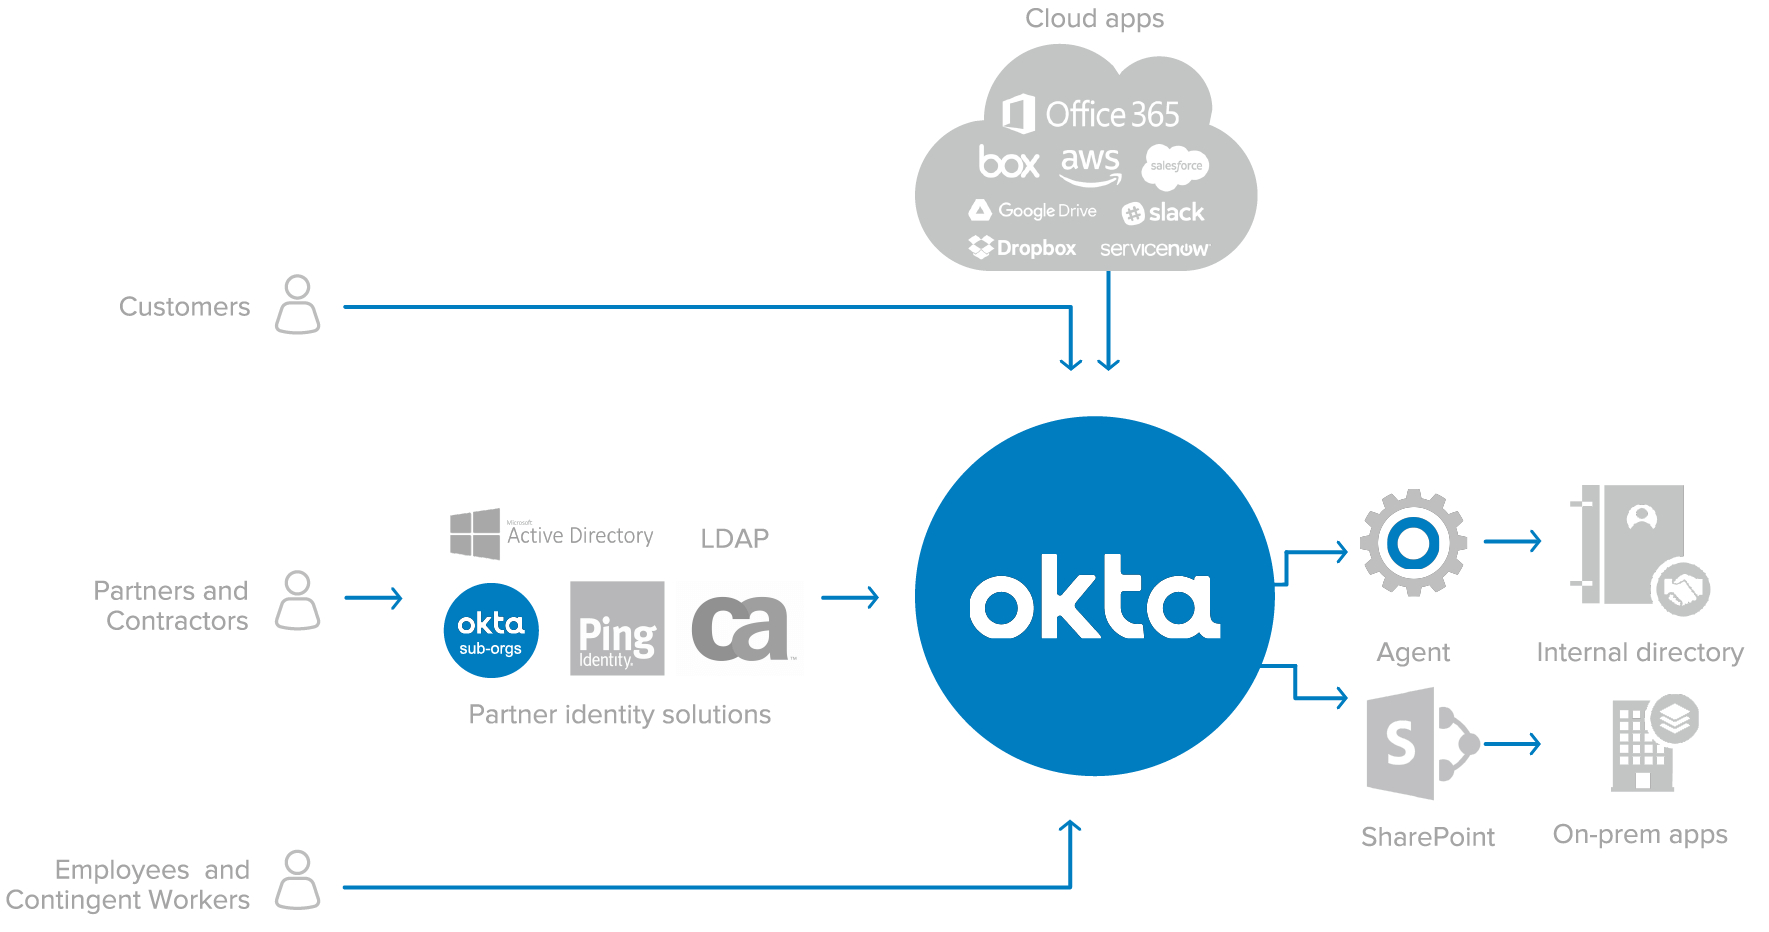 Okta Sharepoint diagram